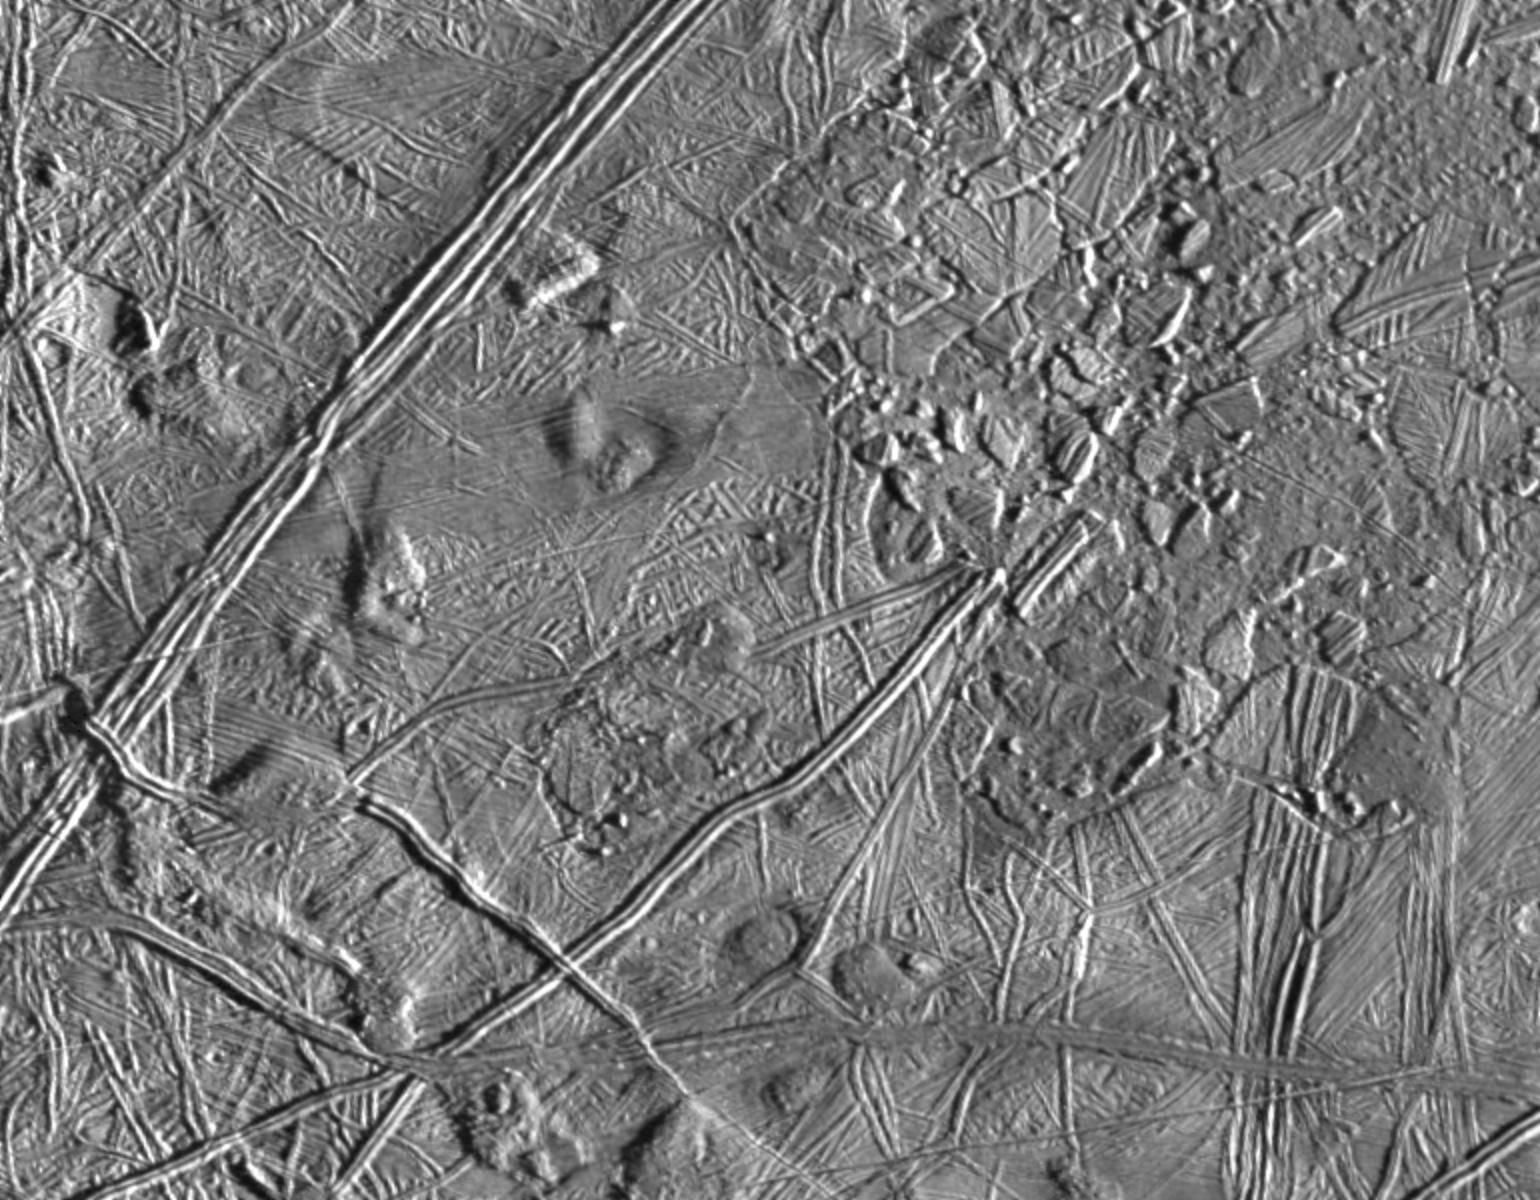 black and white view of complex terrain on an icy surface